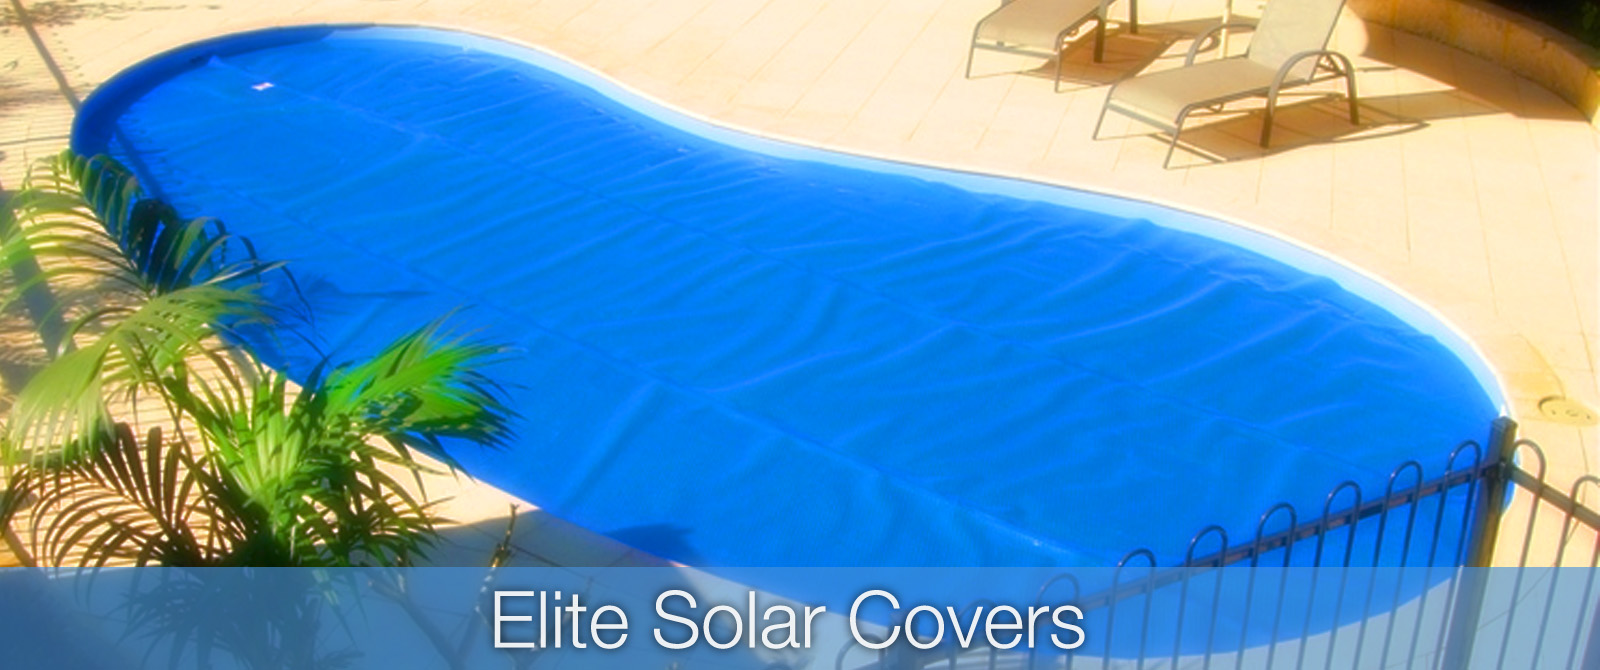 solar pool covers lanzarote